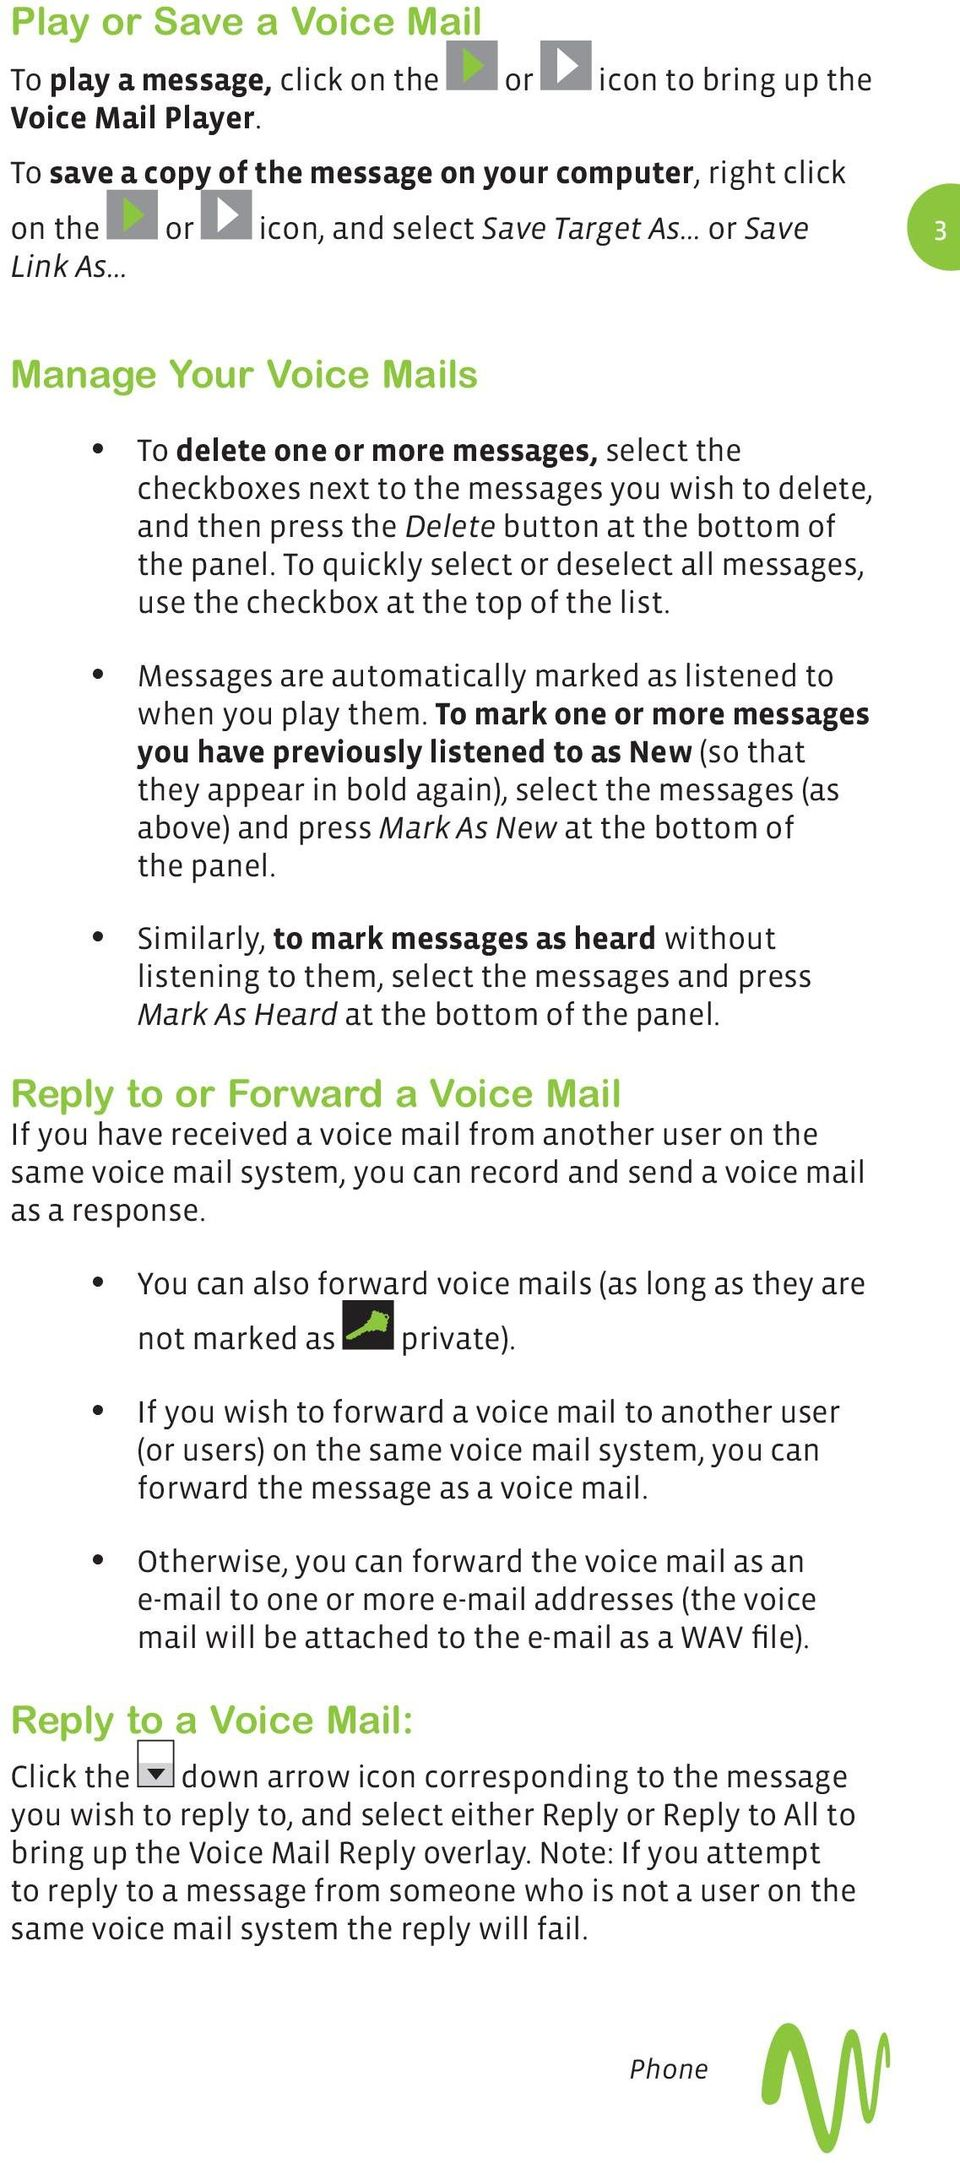 .. 3 Manage Your Voice Mails To delete one or more messages, select the checkboxes next to the messages you wish to delete, and then press the Delete button at the bottom of the panel.